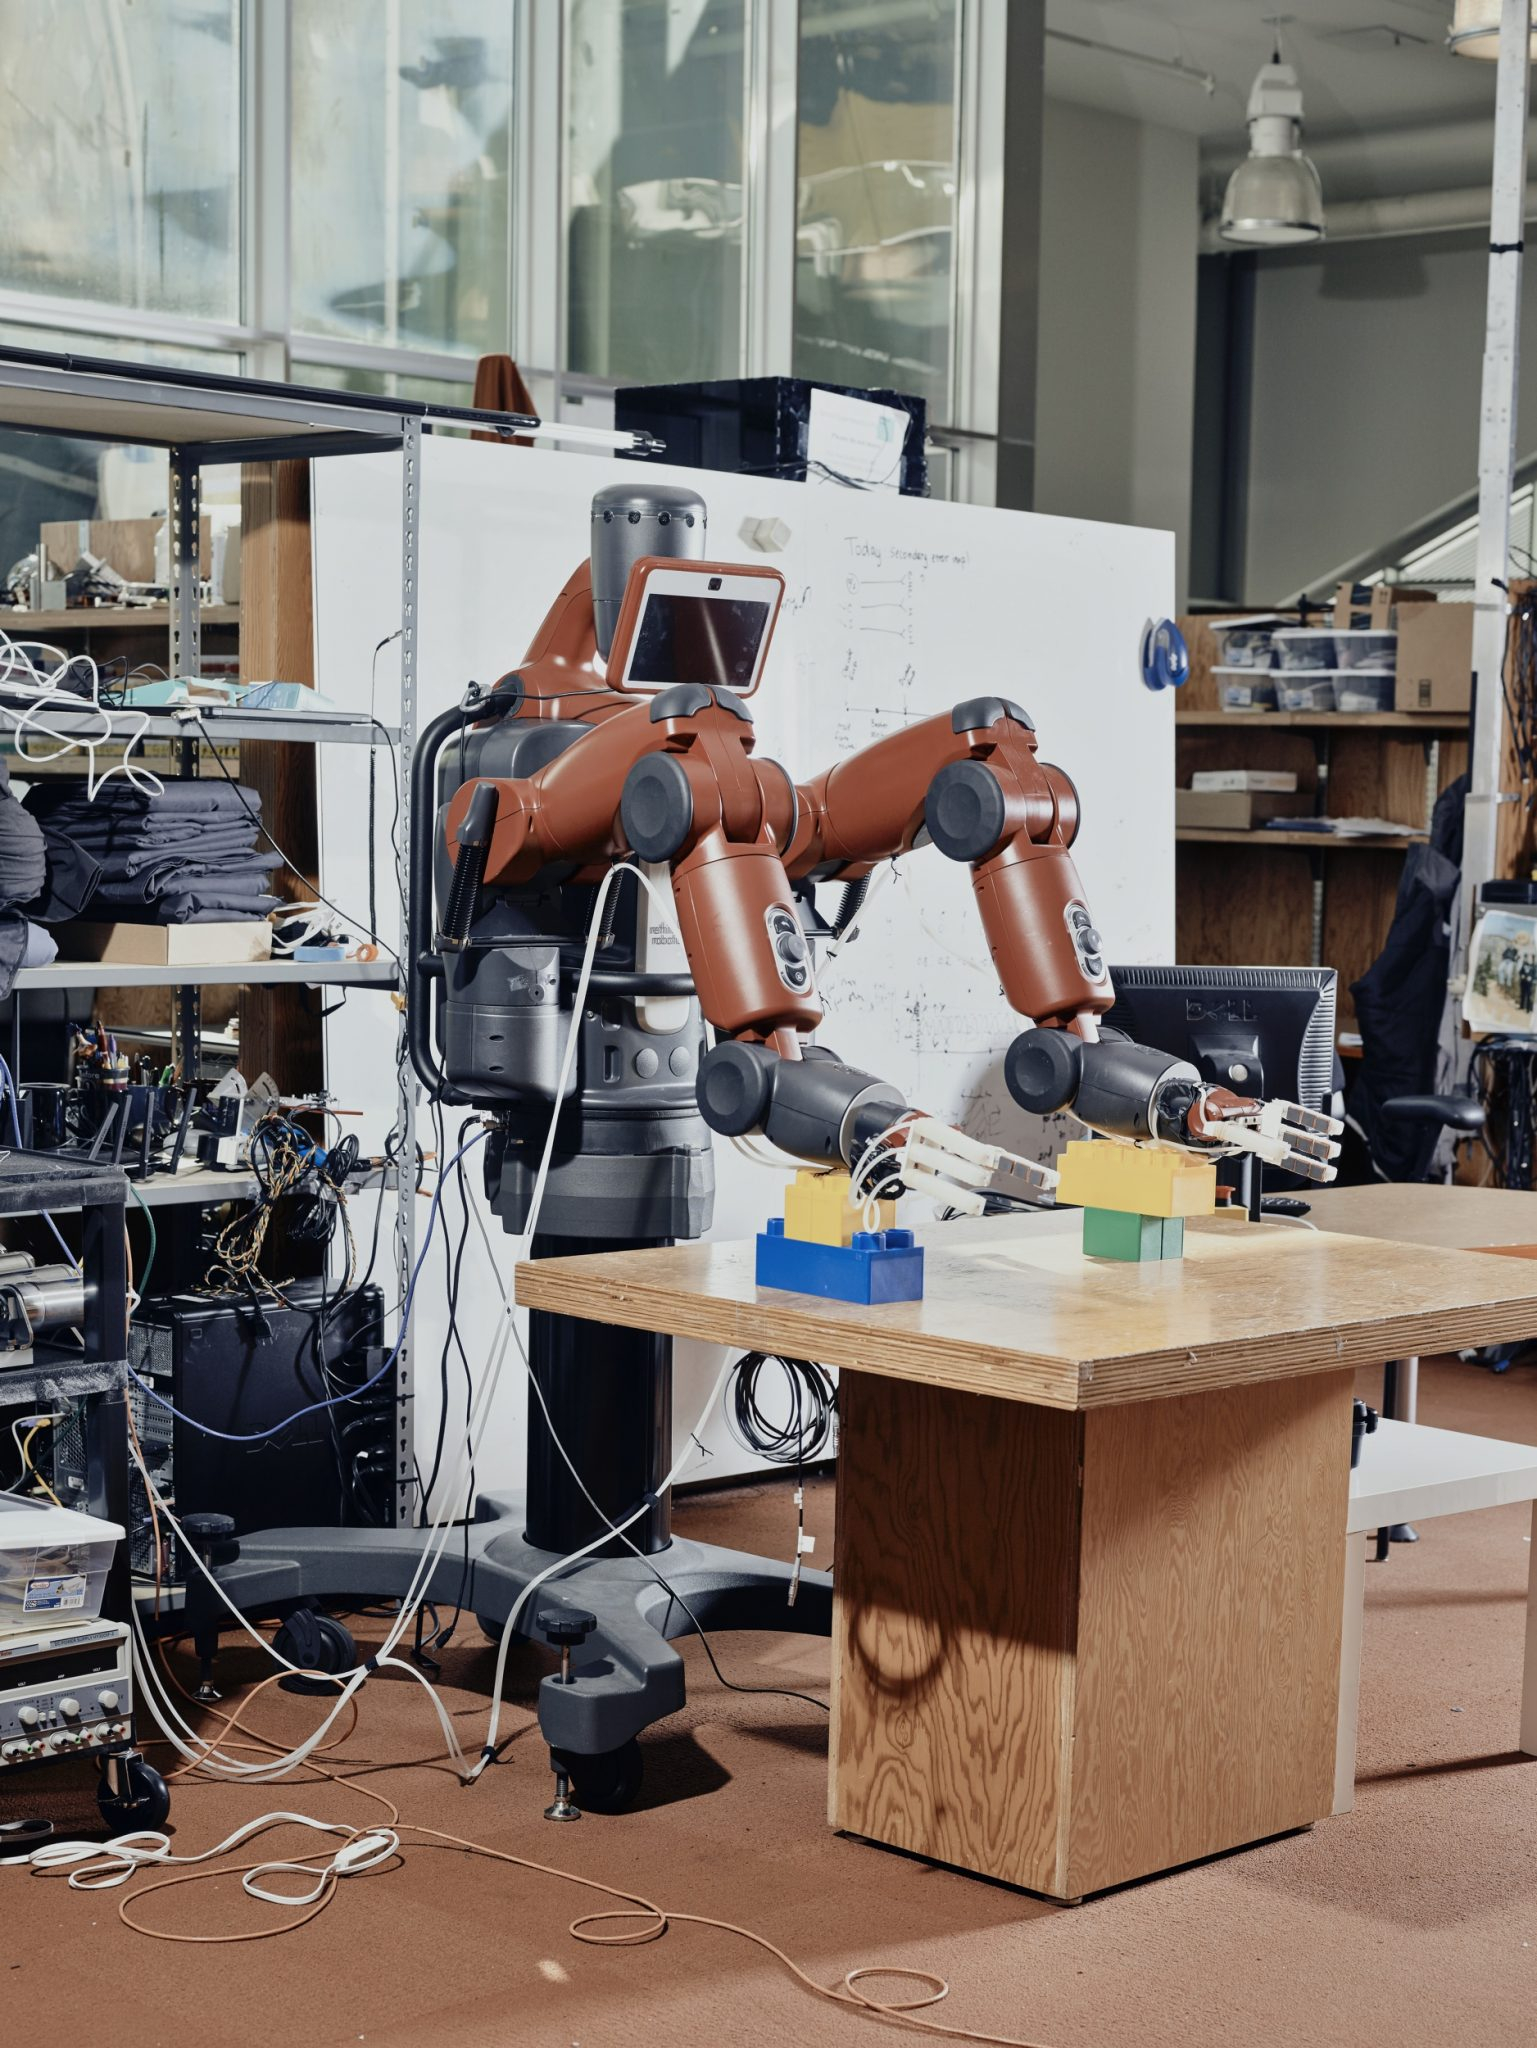 Researchers at the Computer Science and Artificial Intelligence Laboratory at MIT have designed a system that allows Baxter to use a person's brain waves and hand gestures to make decisions and act on them. Massachusetts Institute of Technology, Cambridge, USA, 2017